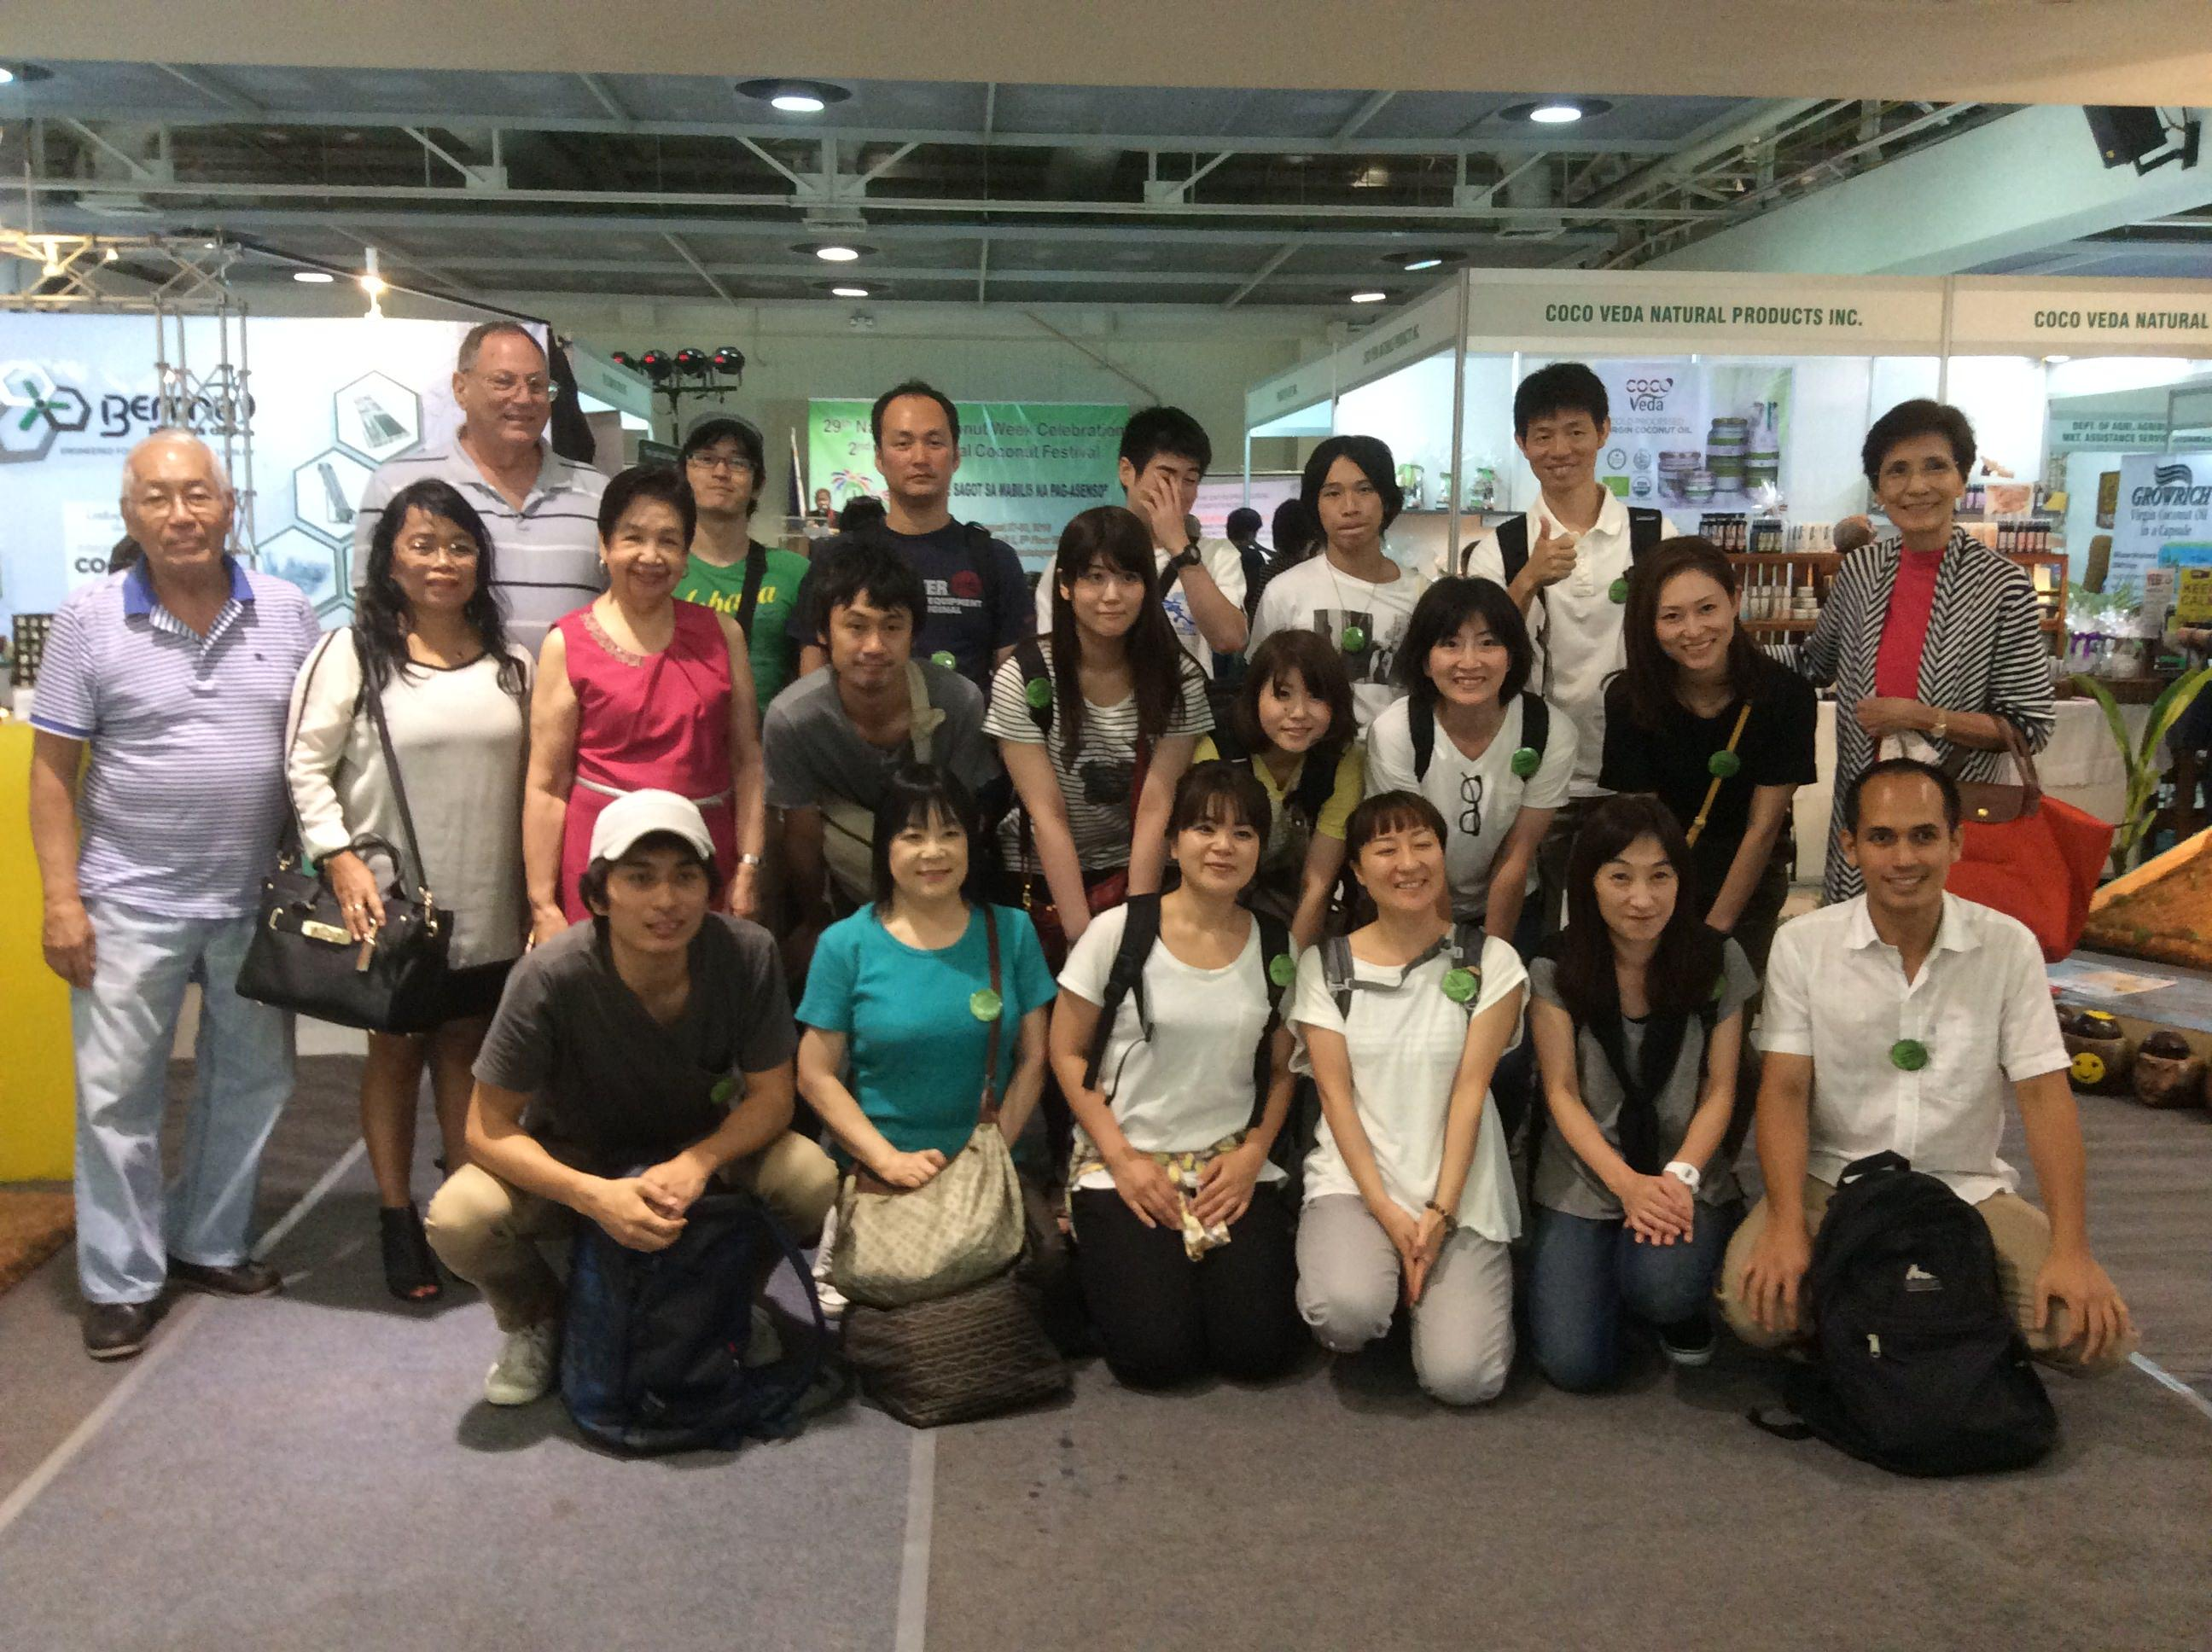 Visit of Japanese delegation during Coconut Week, Aug 27-30 at Megatrade Hall 2, SM Megamall, Mandaluyong City.